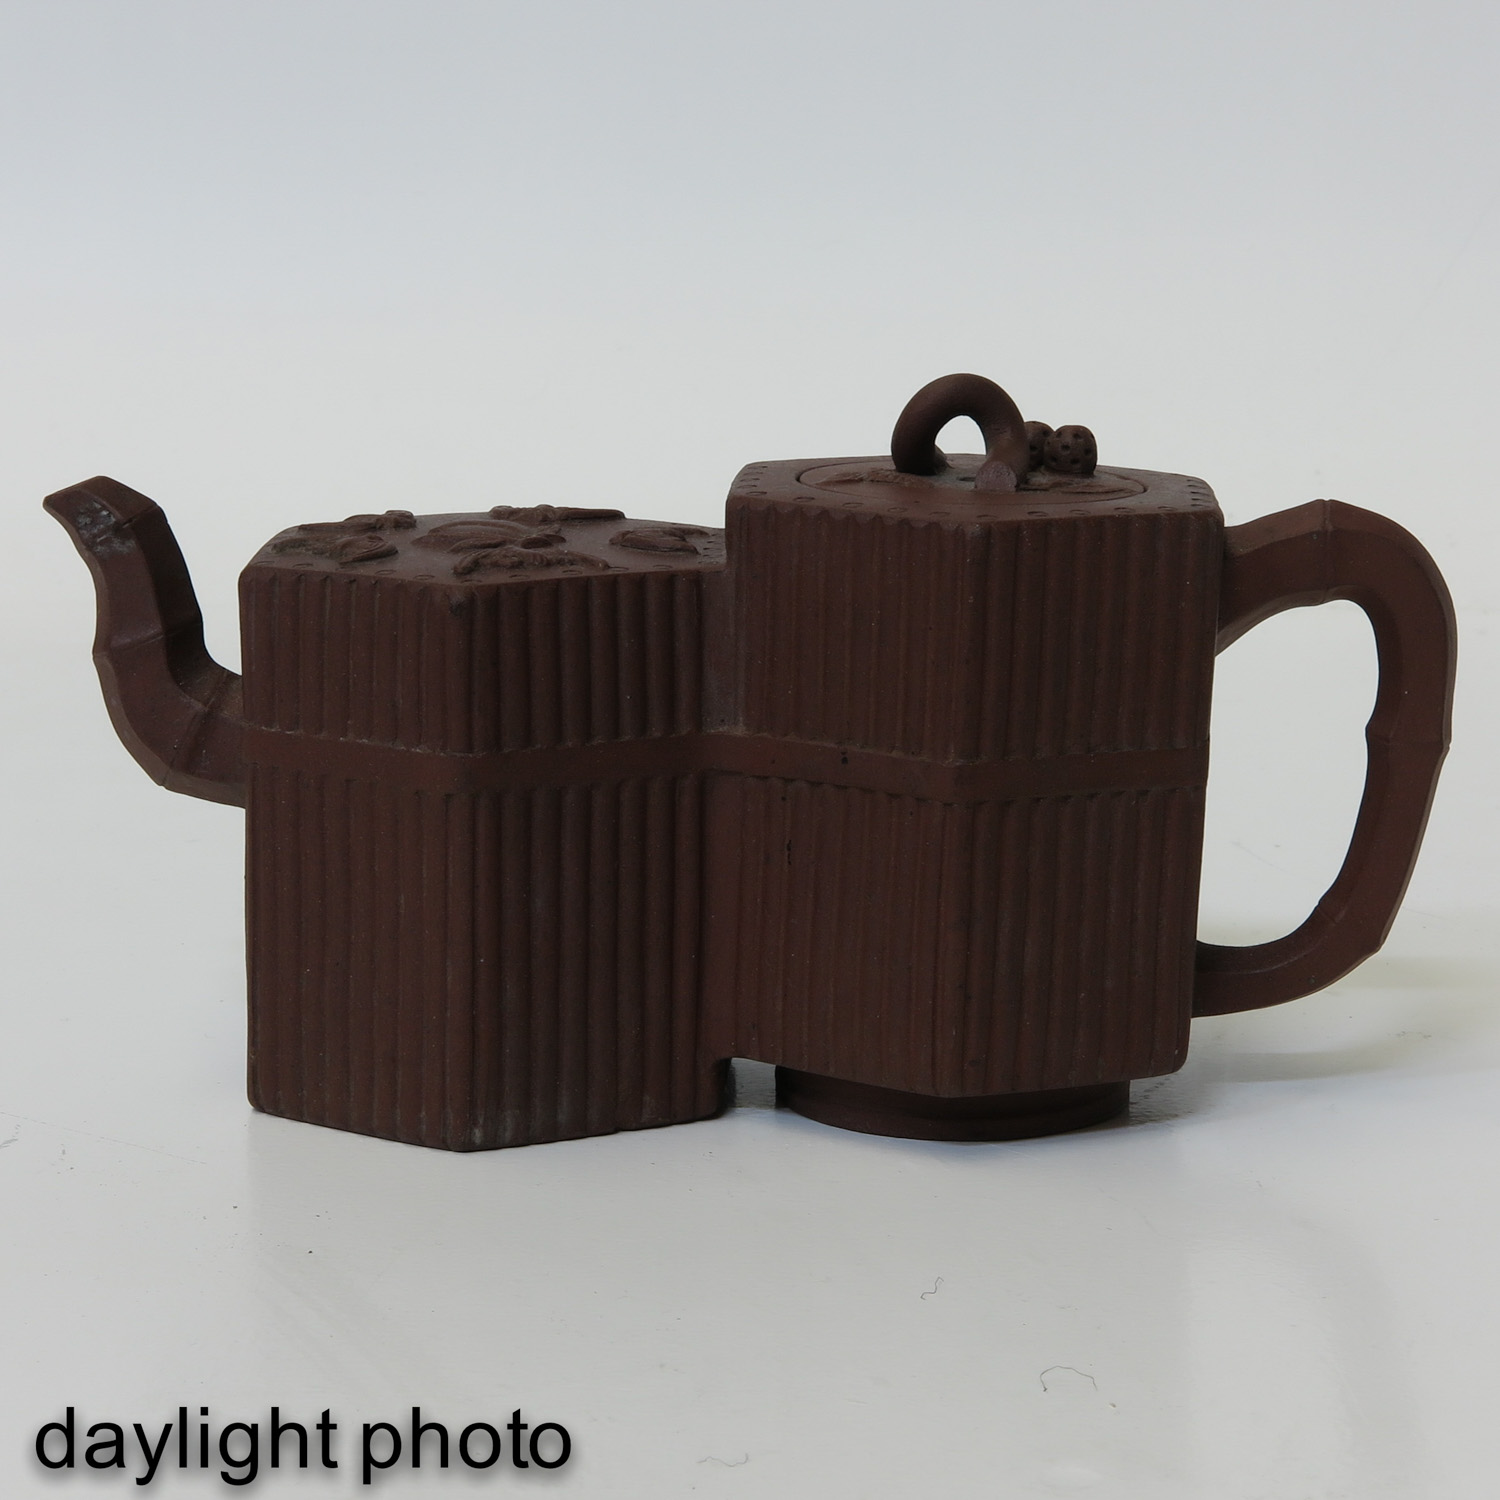 A Double Yixing Teapot - Image 7 of 9